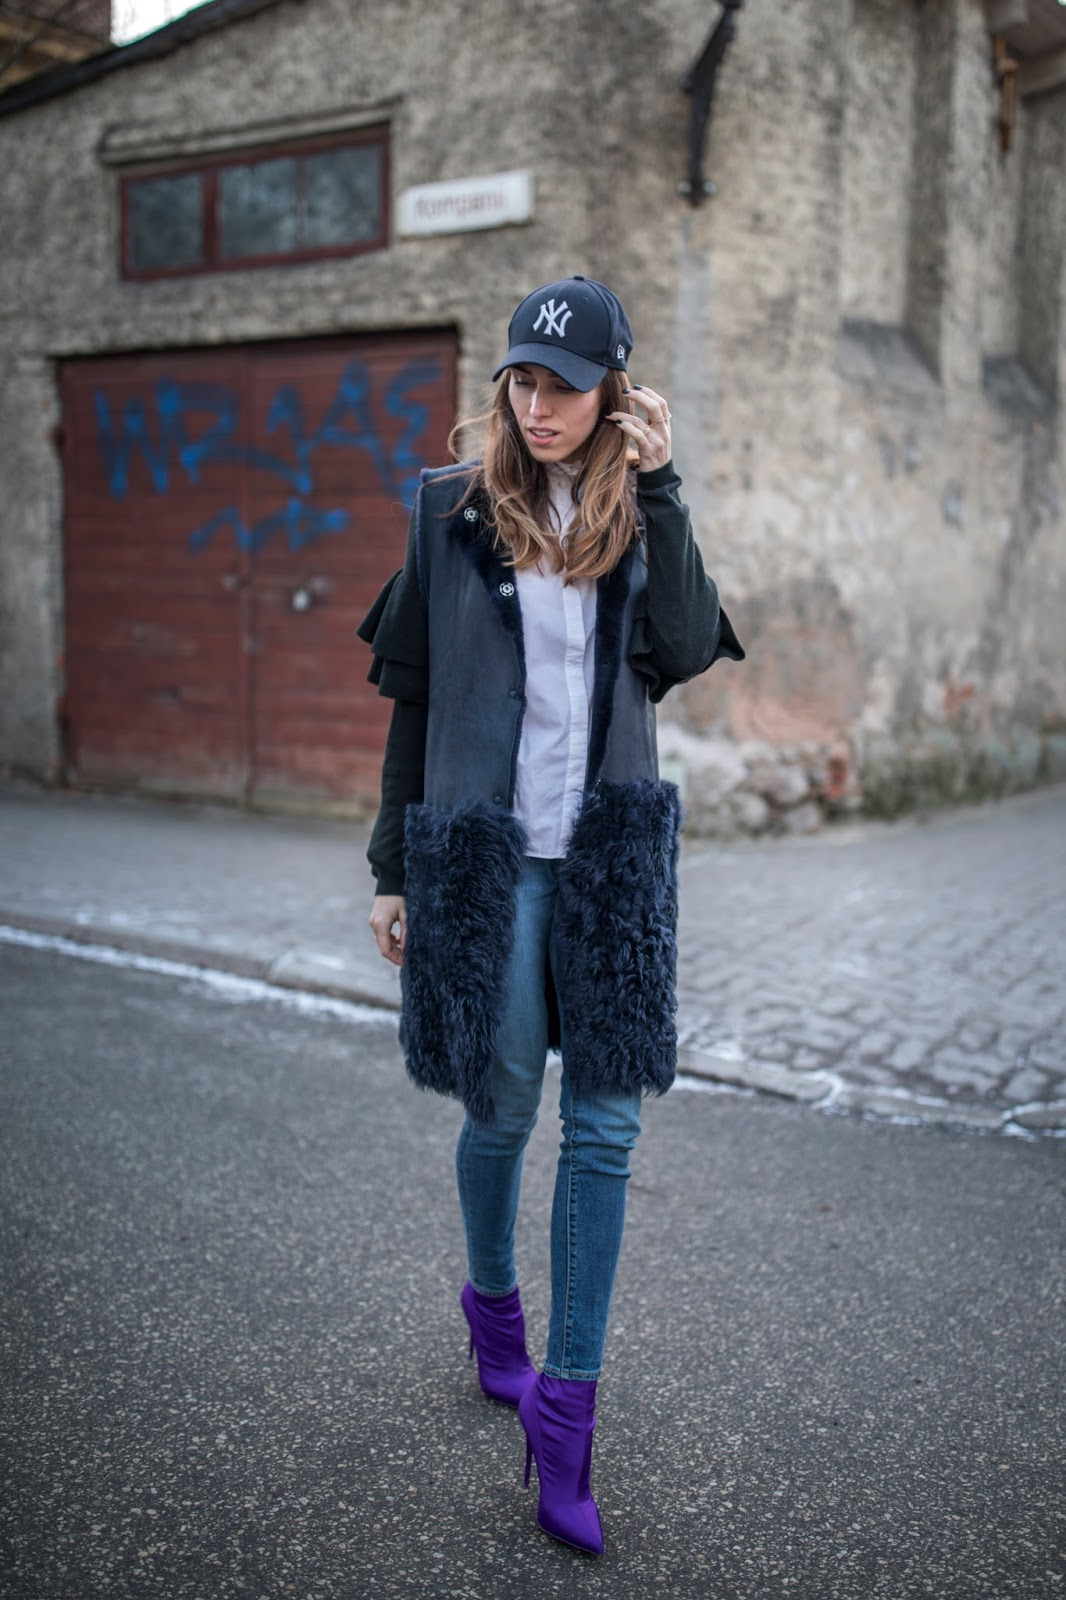 long shearling vest levis jeans purple sock boots outfit